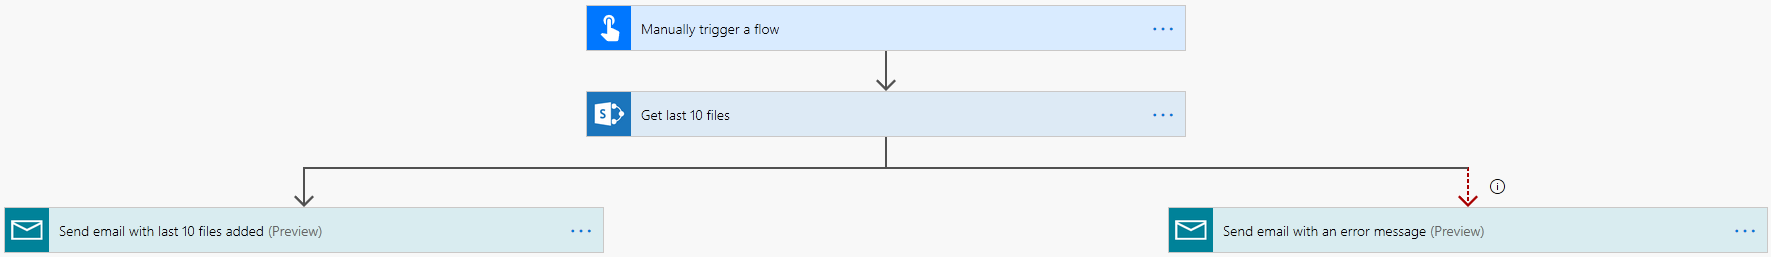 Flow with error processing